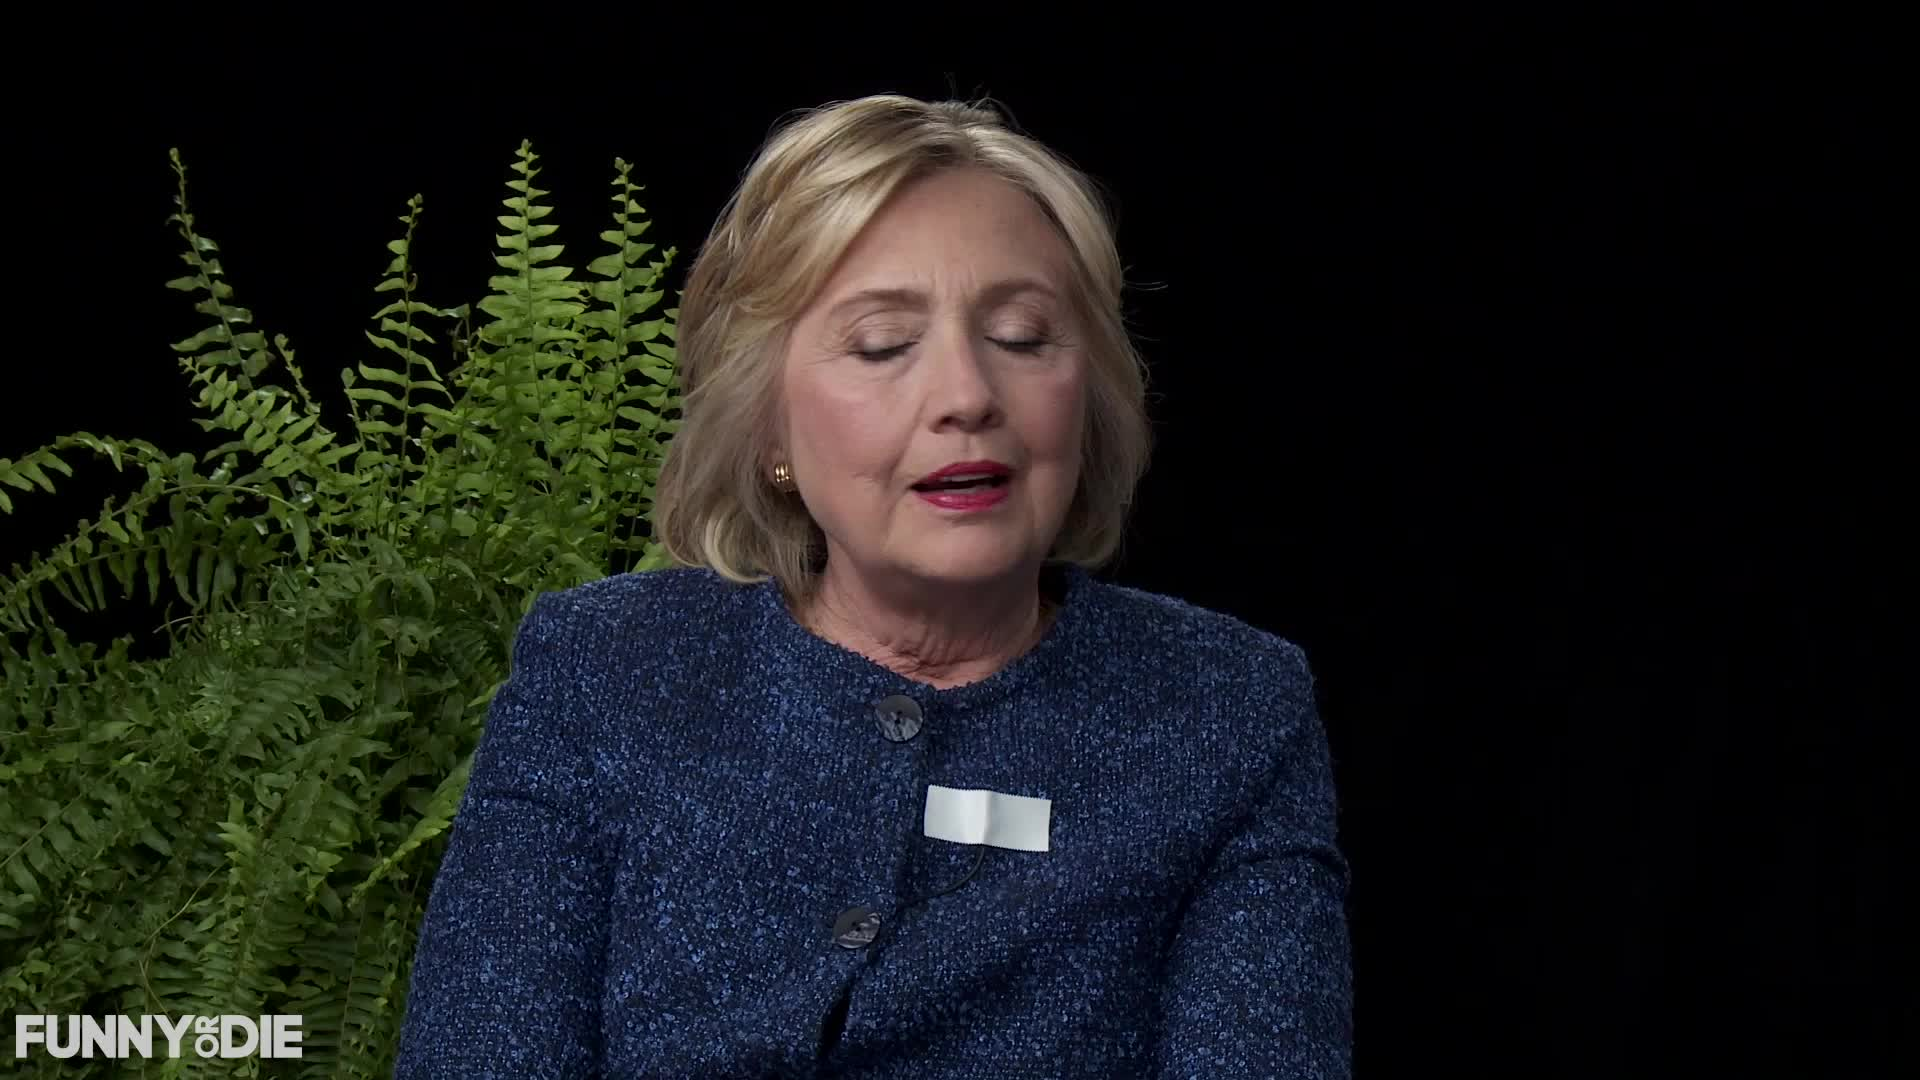 SMH, between two ferns, between2ferns, betweentwoferns, fod, funny or die, hillary clinton, hillaryclinton, regrets, zach galifianakis, Regrets - Between Two Ferns with Hillary Clinton GIFs